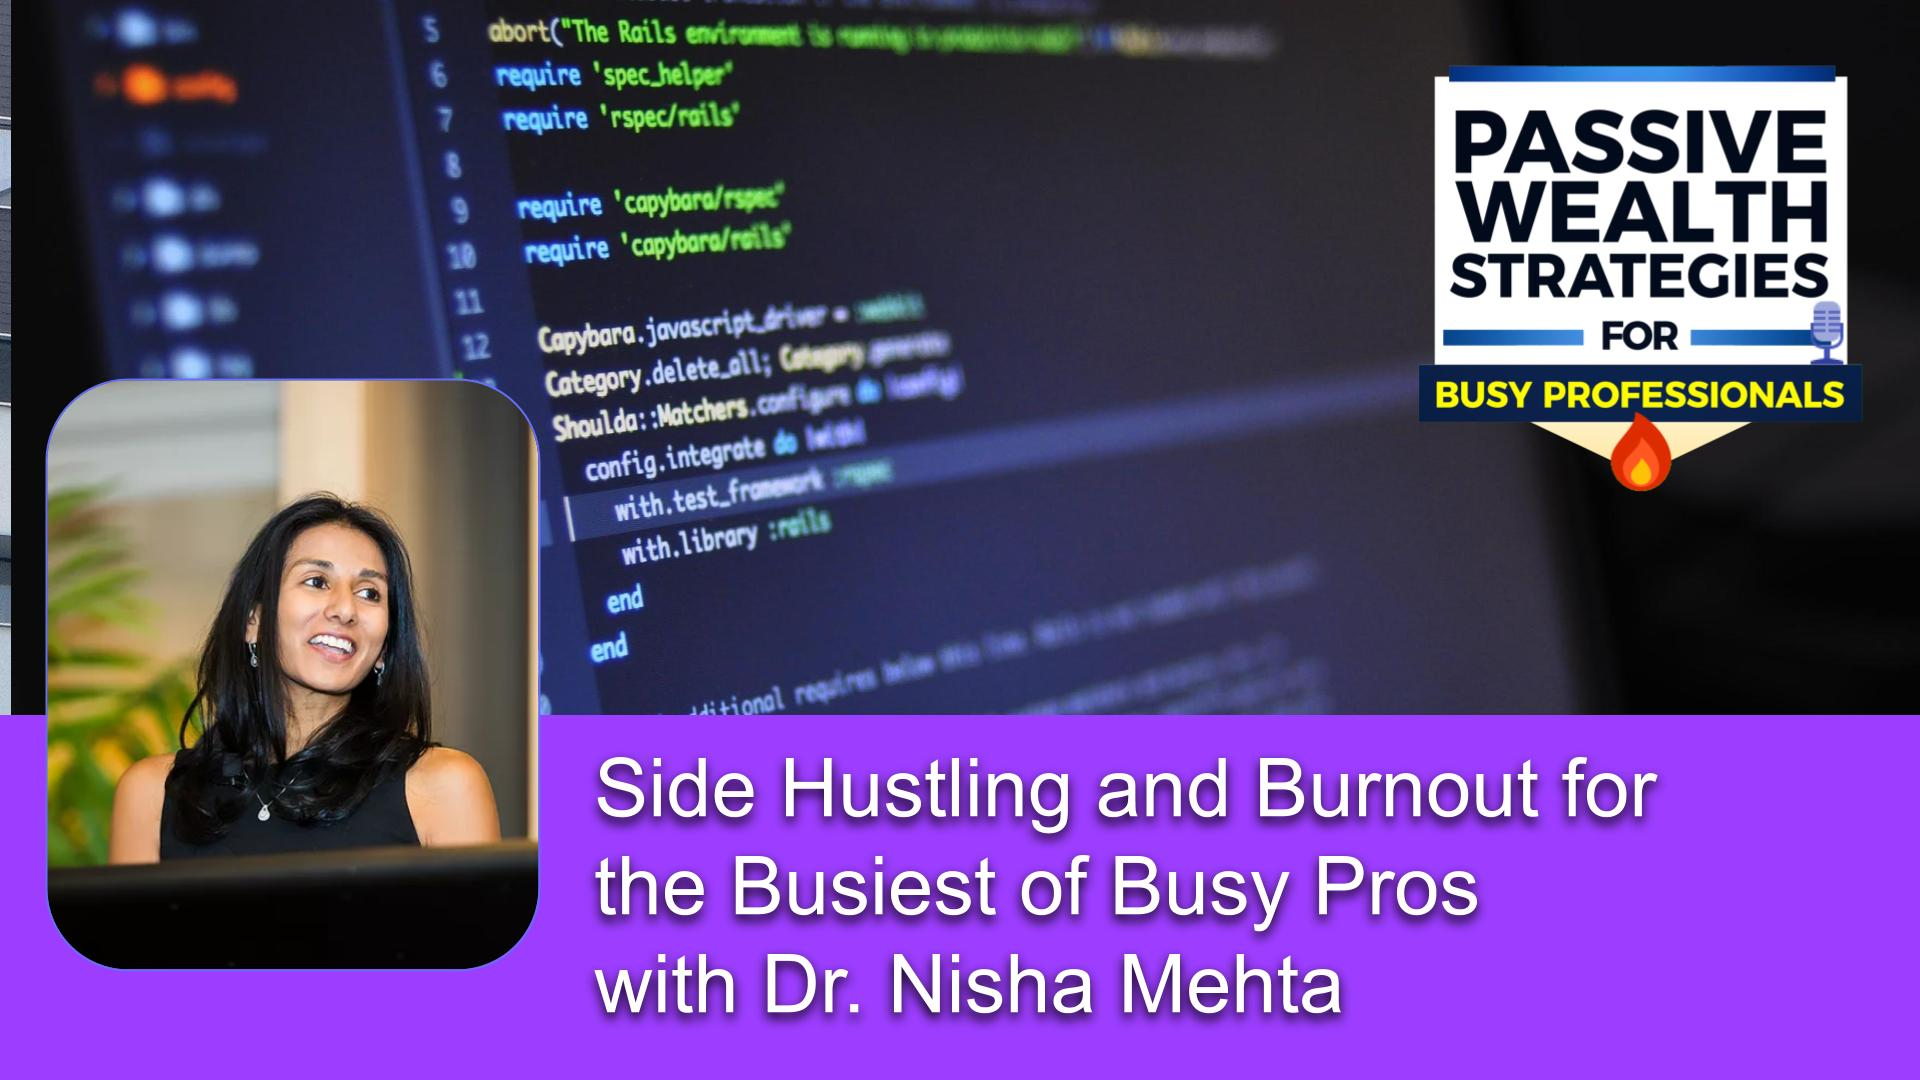 177 Side Hustling and Burnout for the Busiest of Busy Pros with Dr. Nisha Mehta